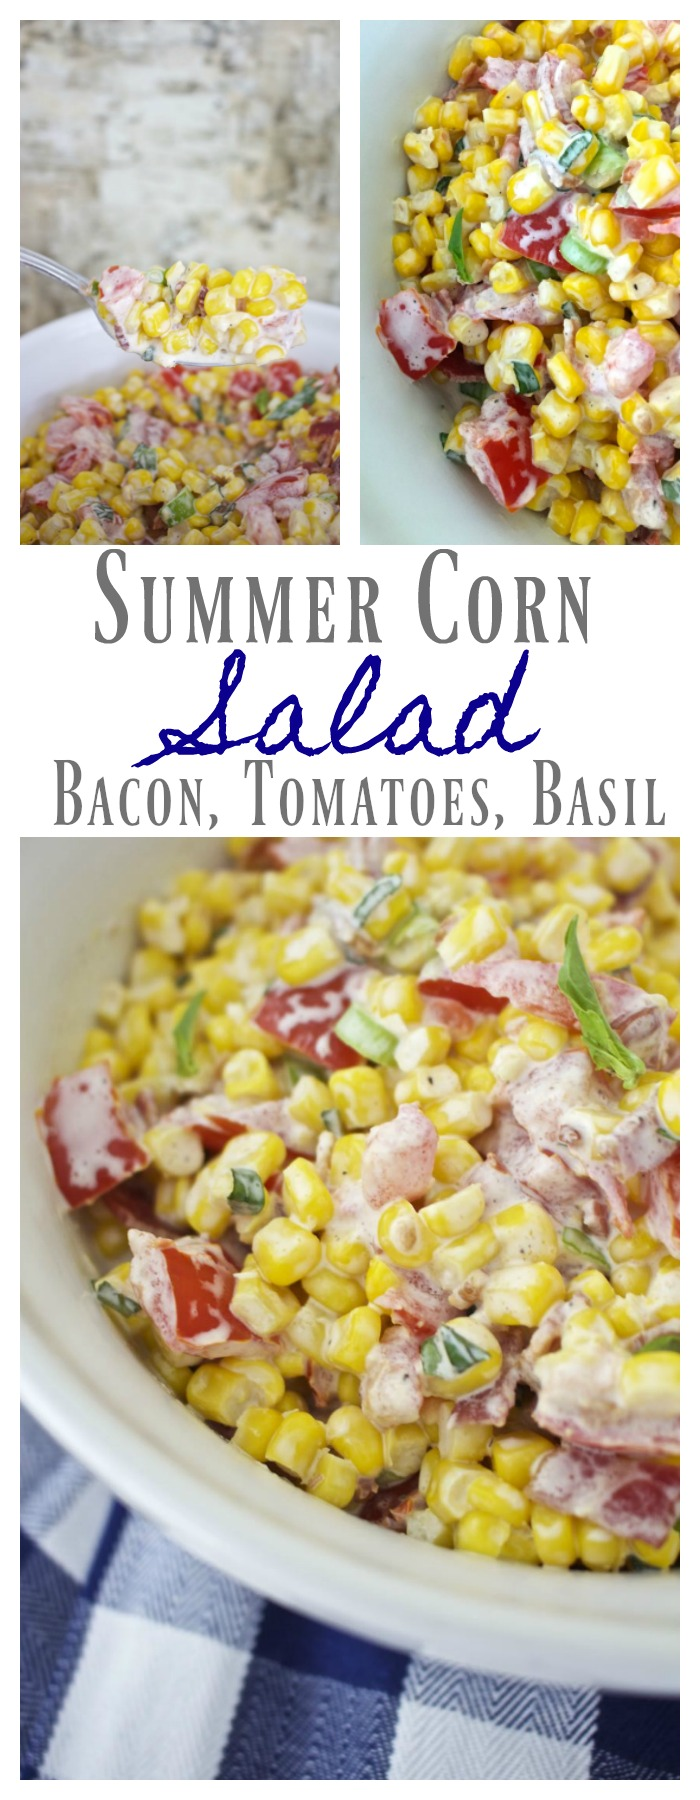 Summer Corn Salad Perfectly Delicious 2 Bees In A Pod